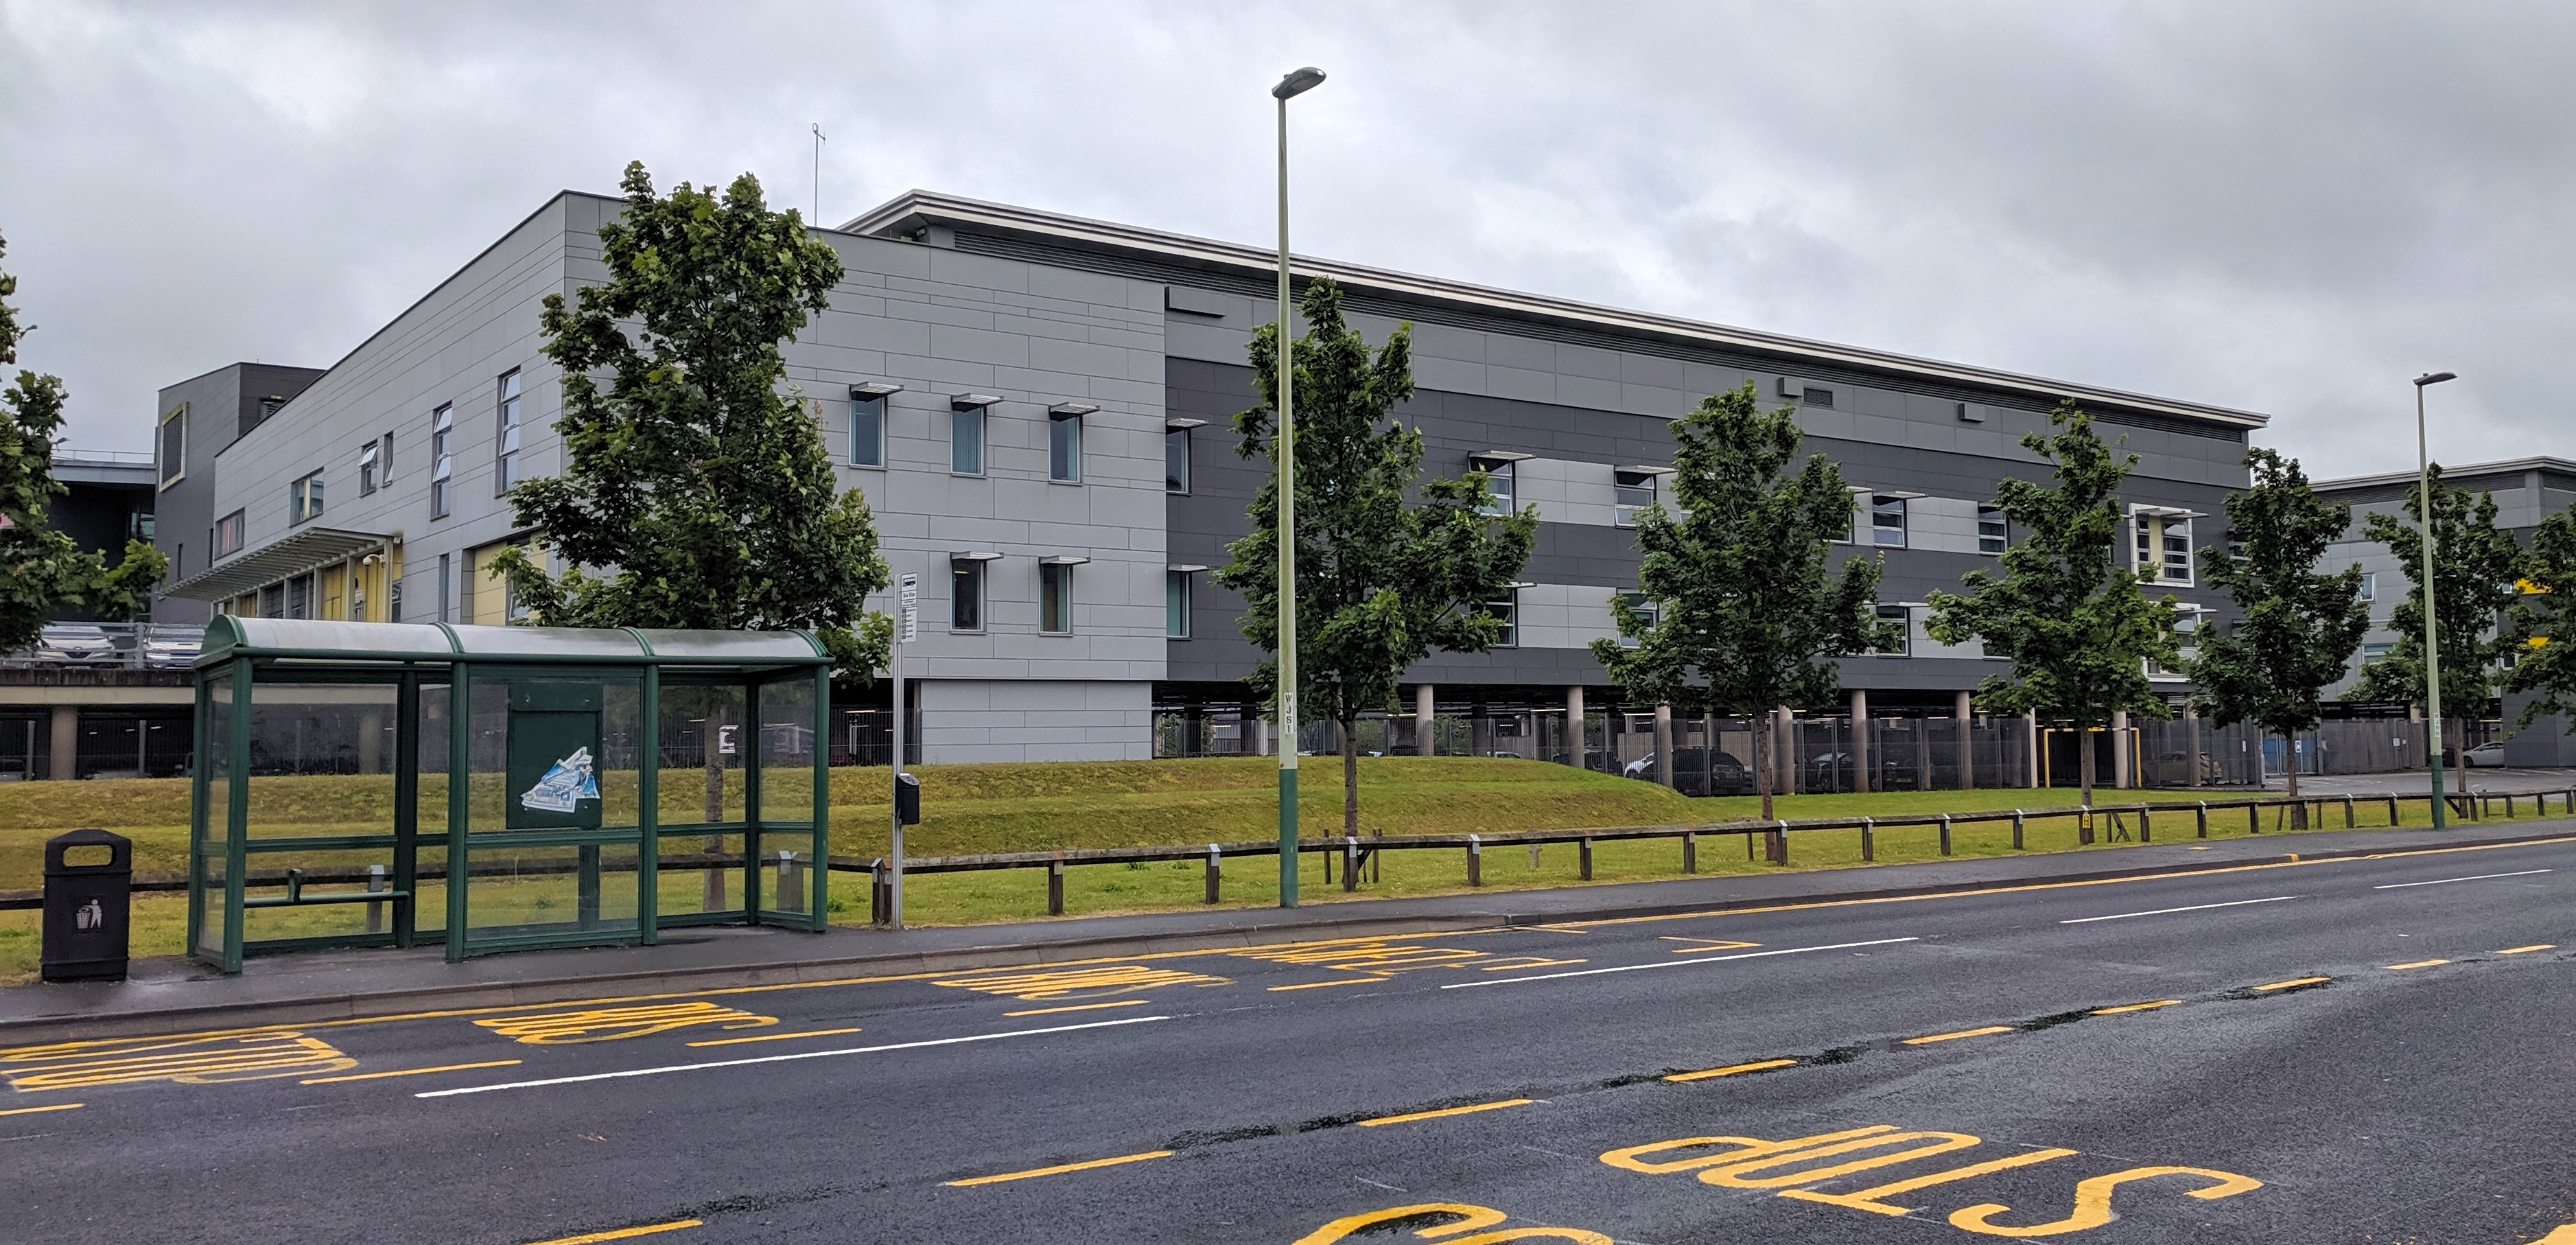 Photo of Ysbyty Ystrad Fawr hospital from across the road